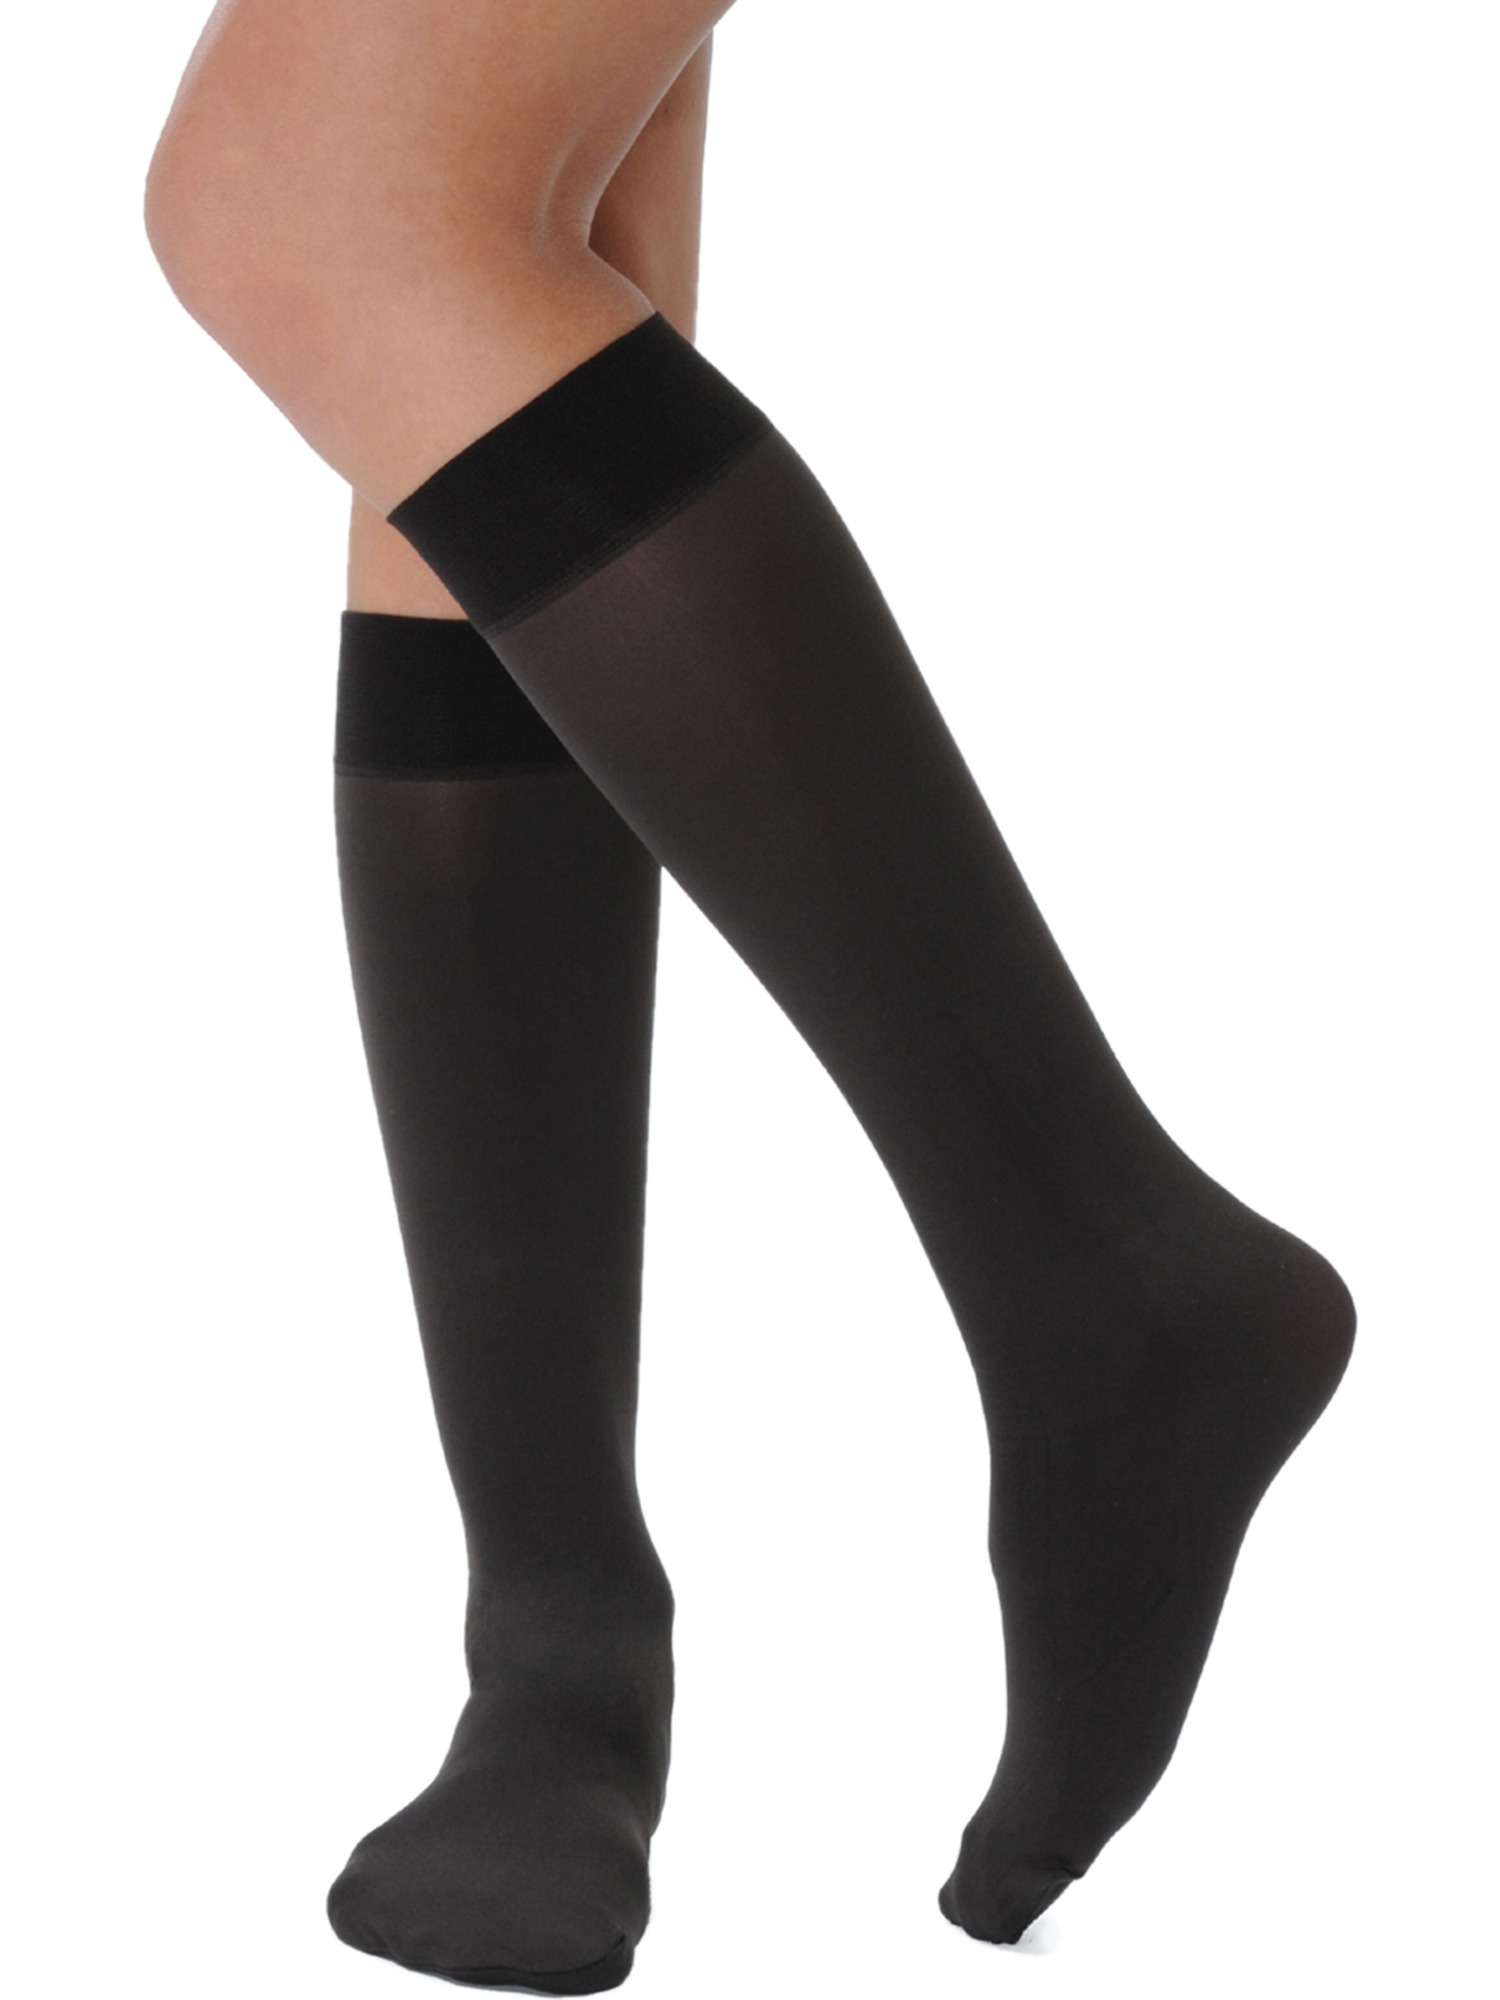 Womens Semi Opaque Trouser Socks Denier Matte Made in Italy 4 Color Options